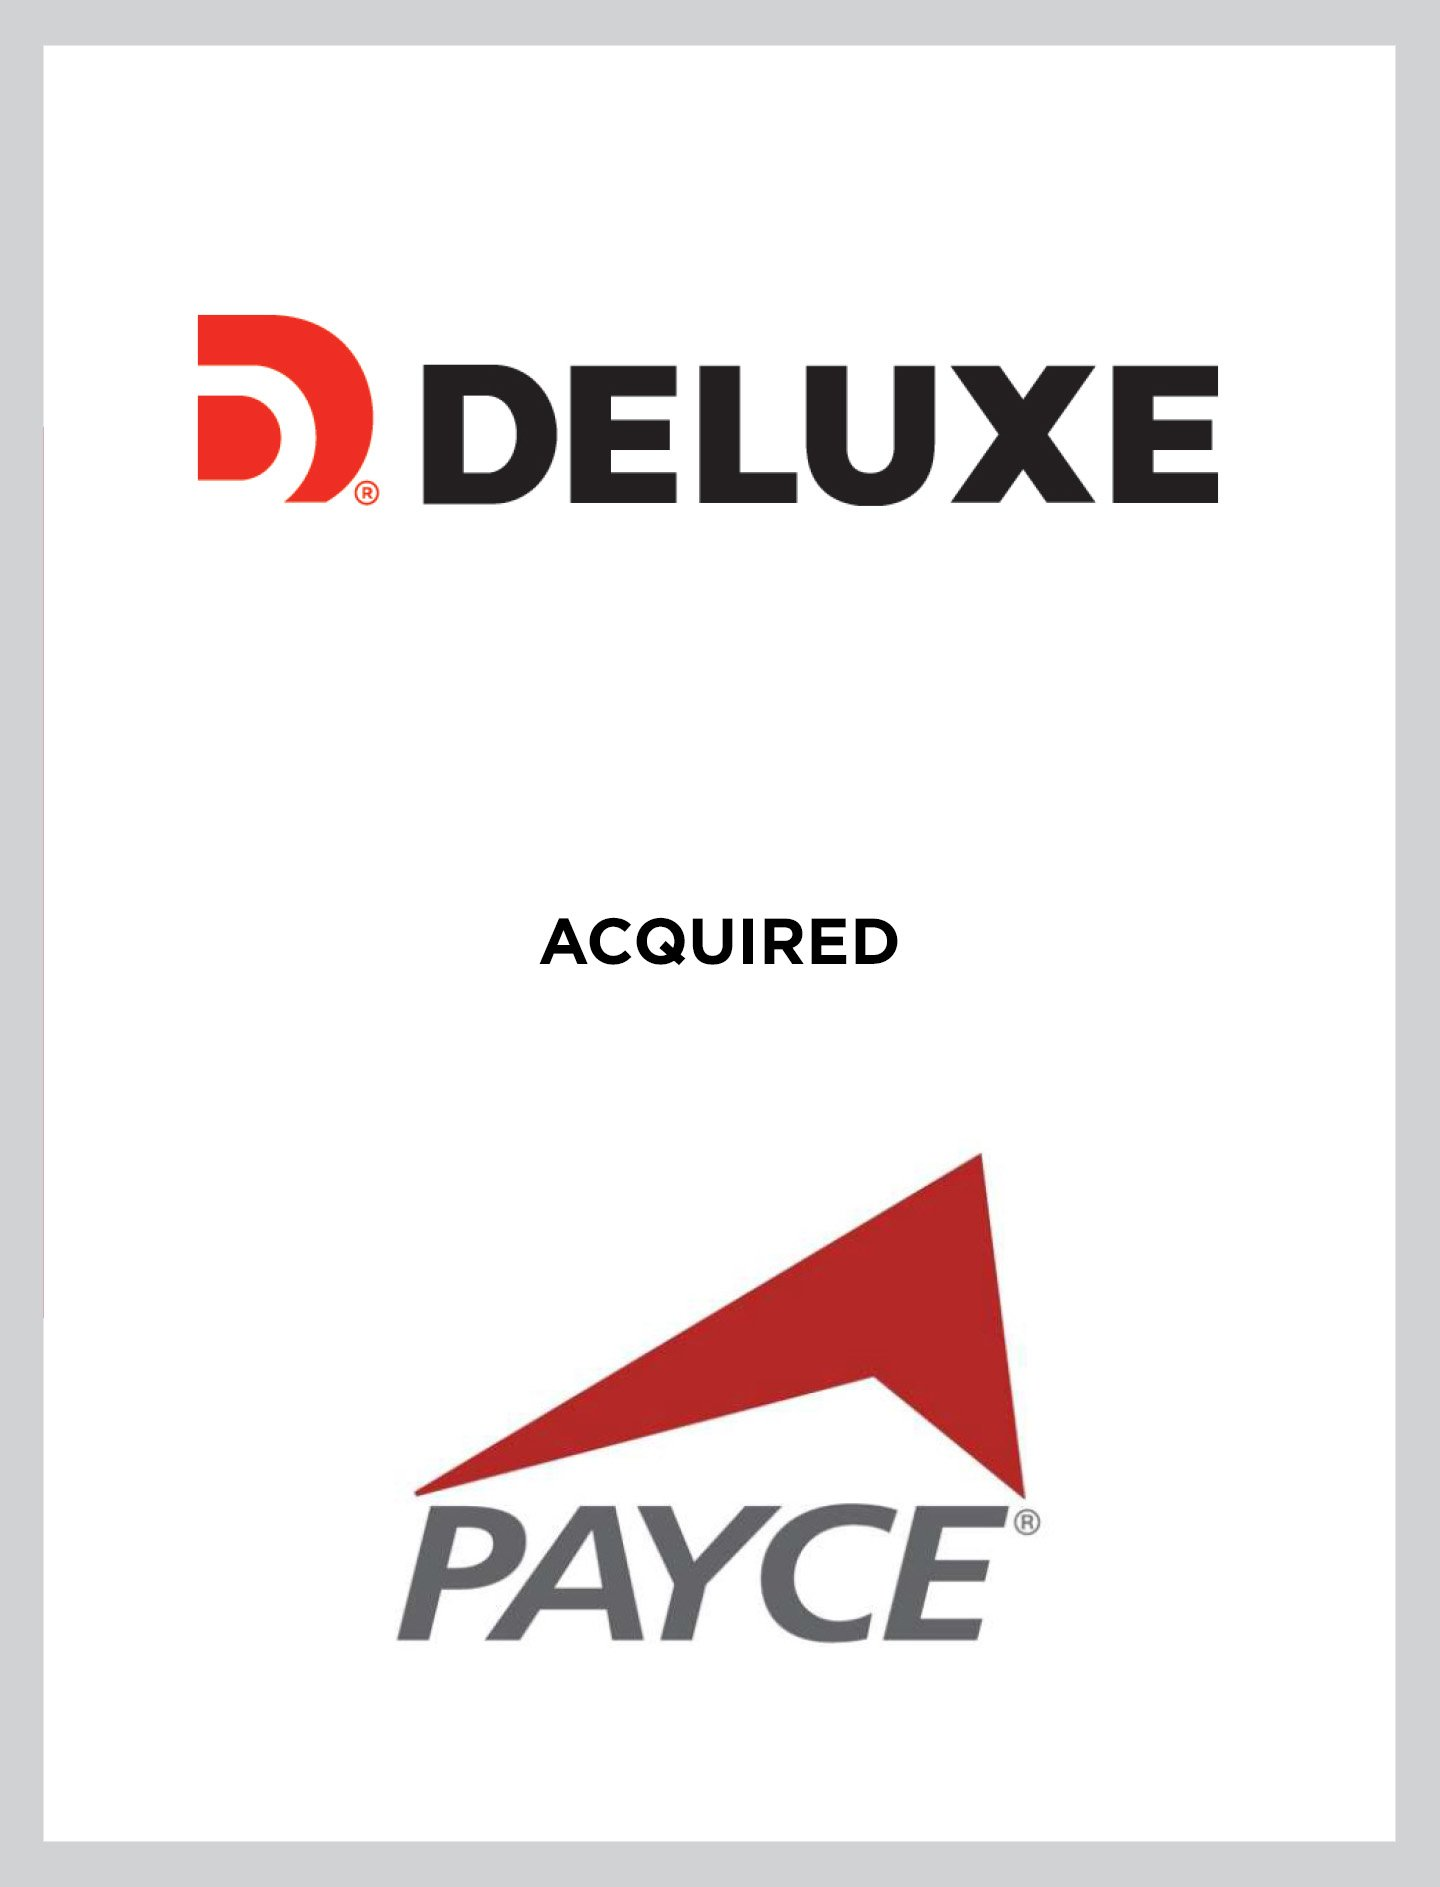 Deluxe/Payce Case Study